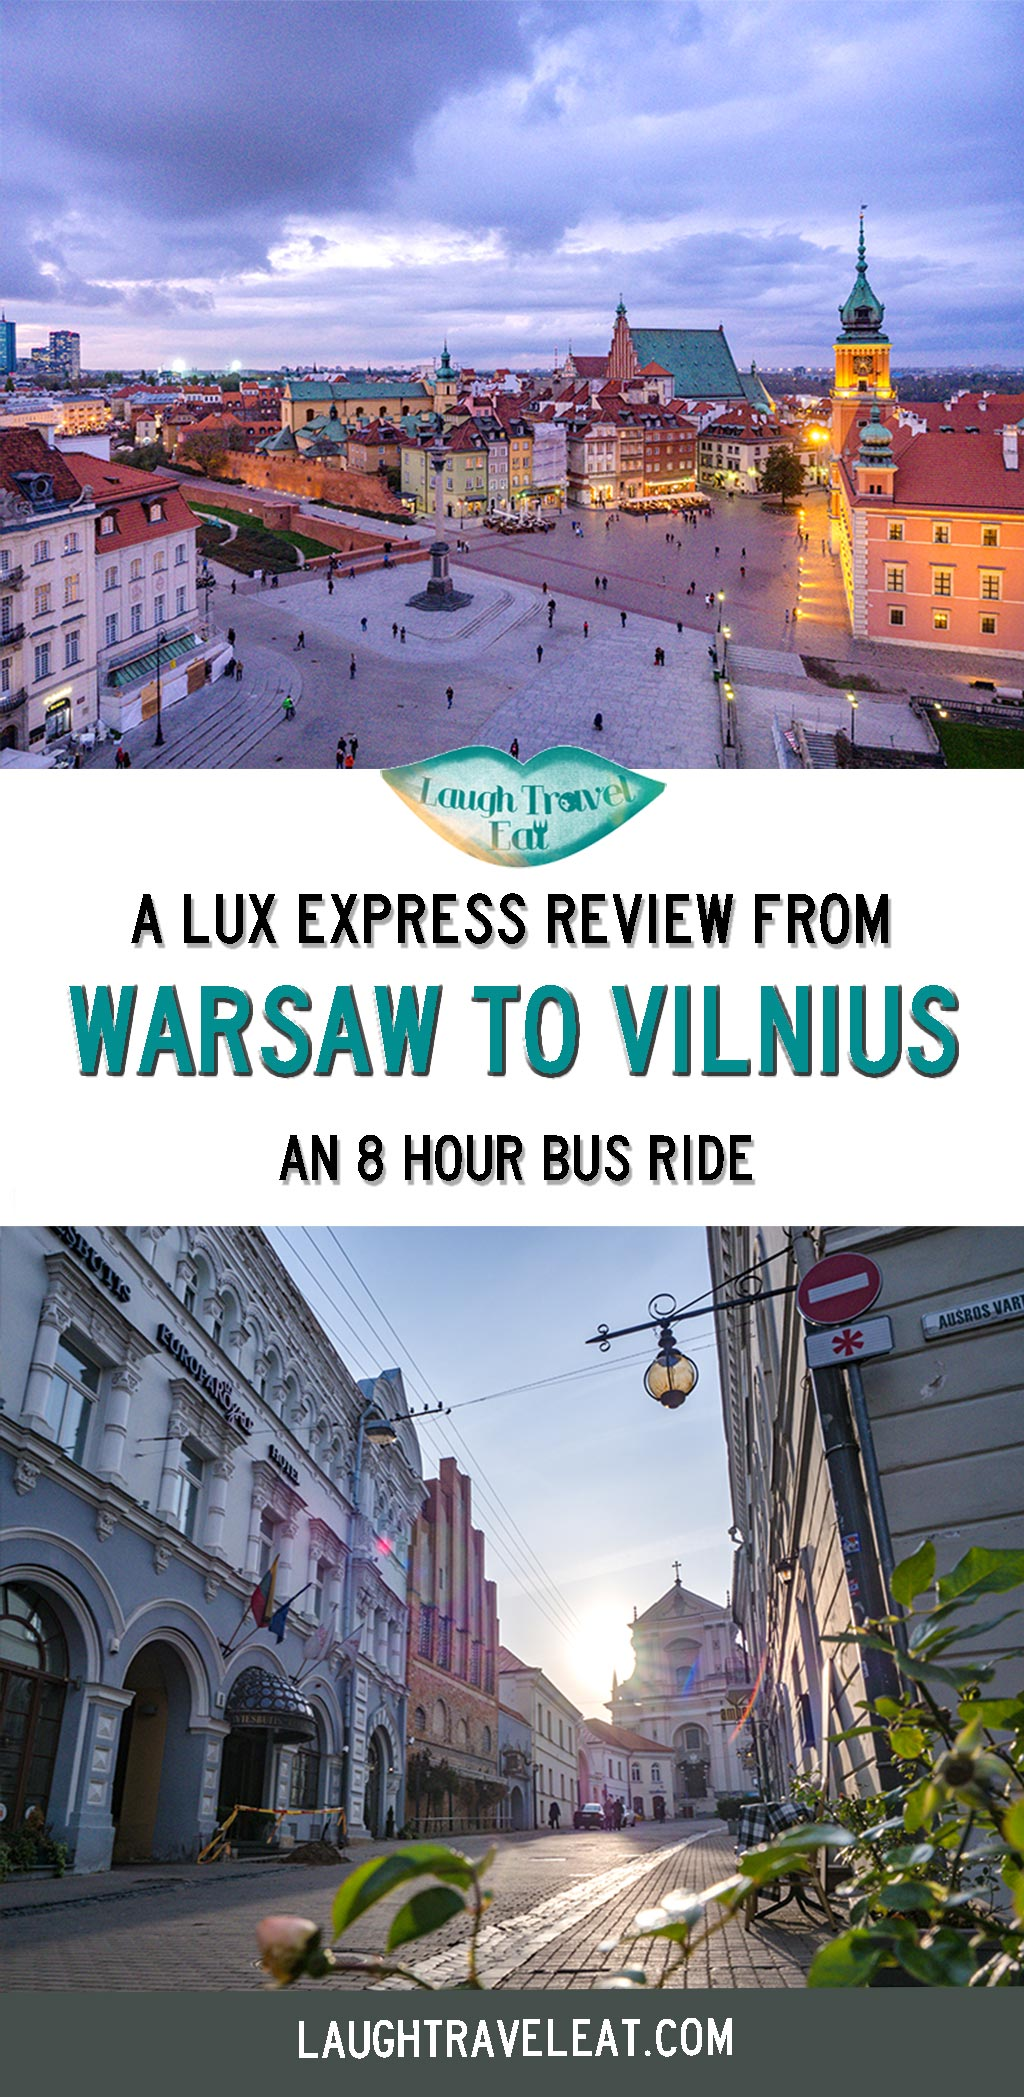 Warsaw to Vilinus is a long journey on bus, but in this part of Europe, from Warsaw up to the Baltics, the train connection isn't as good. At first, I was tentative about the almost 8 hour bus ride, but flying isn't exactly cheap. After checking out Lux Express, I decided that it sounds like a perfectly good option and I was right. Here's how my Warsaw to Vilnius journey went: #Warsaw #Vilnius #Bus #Overland